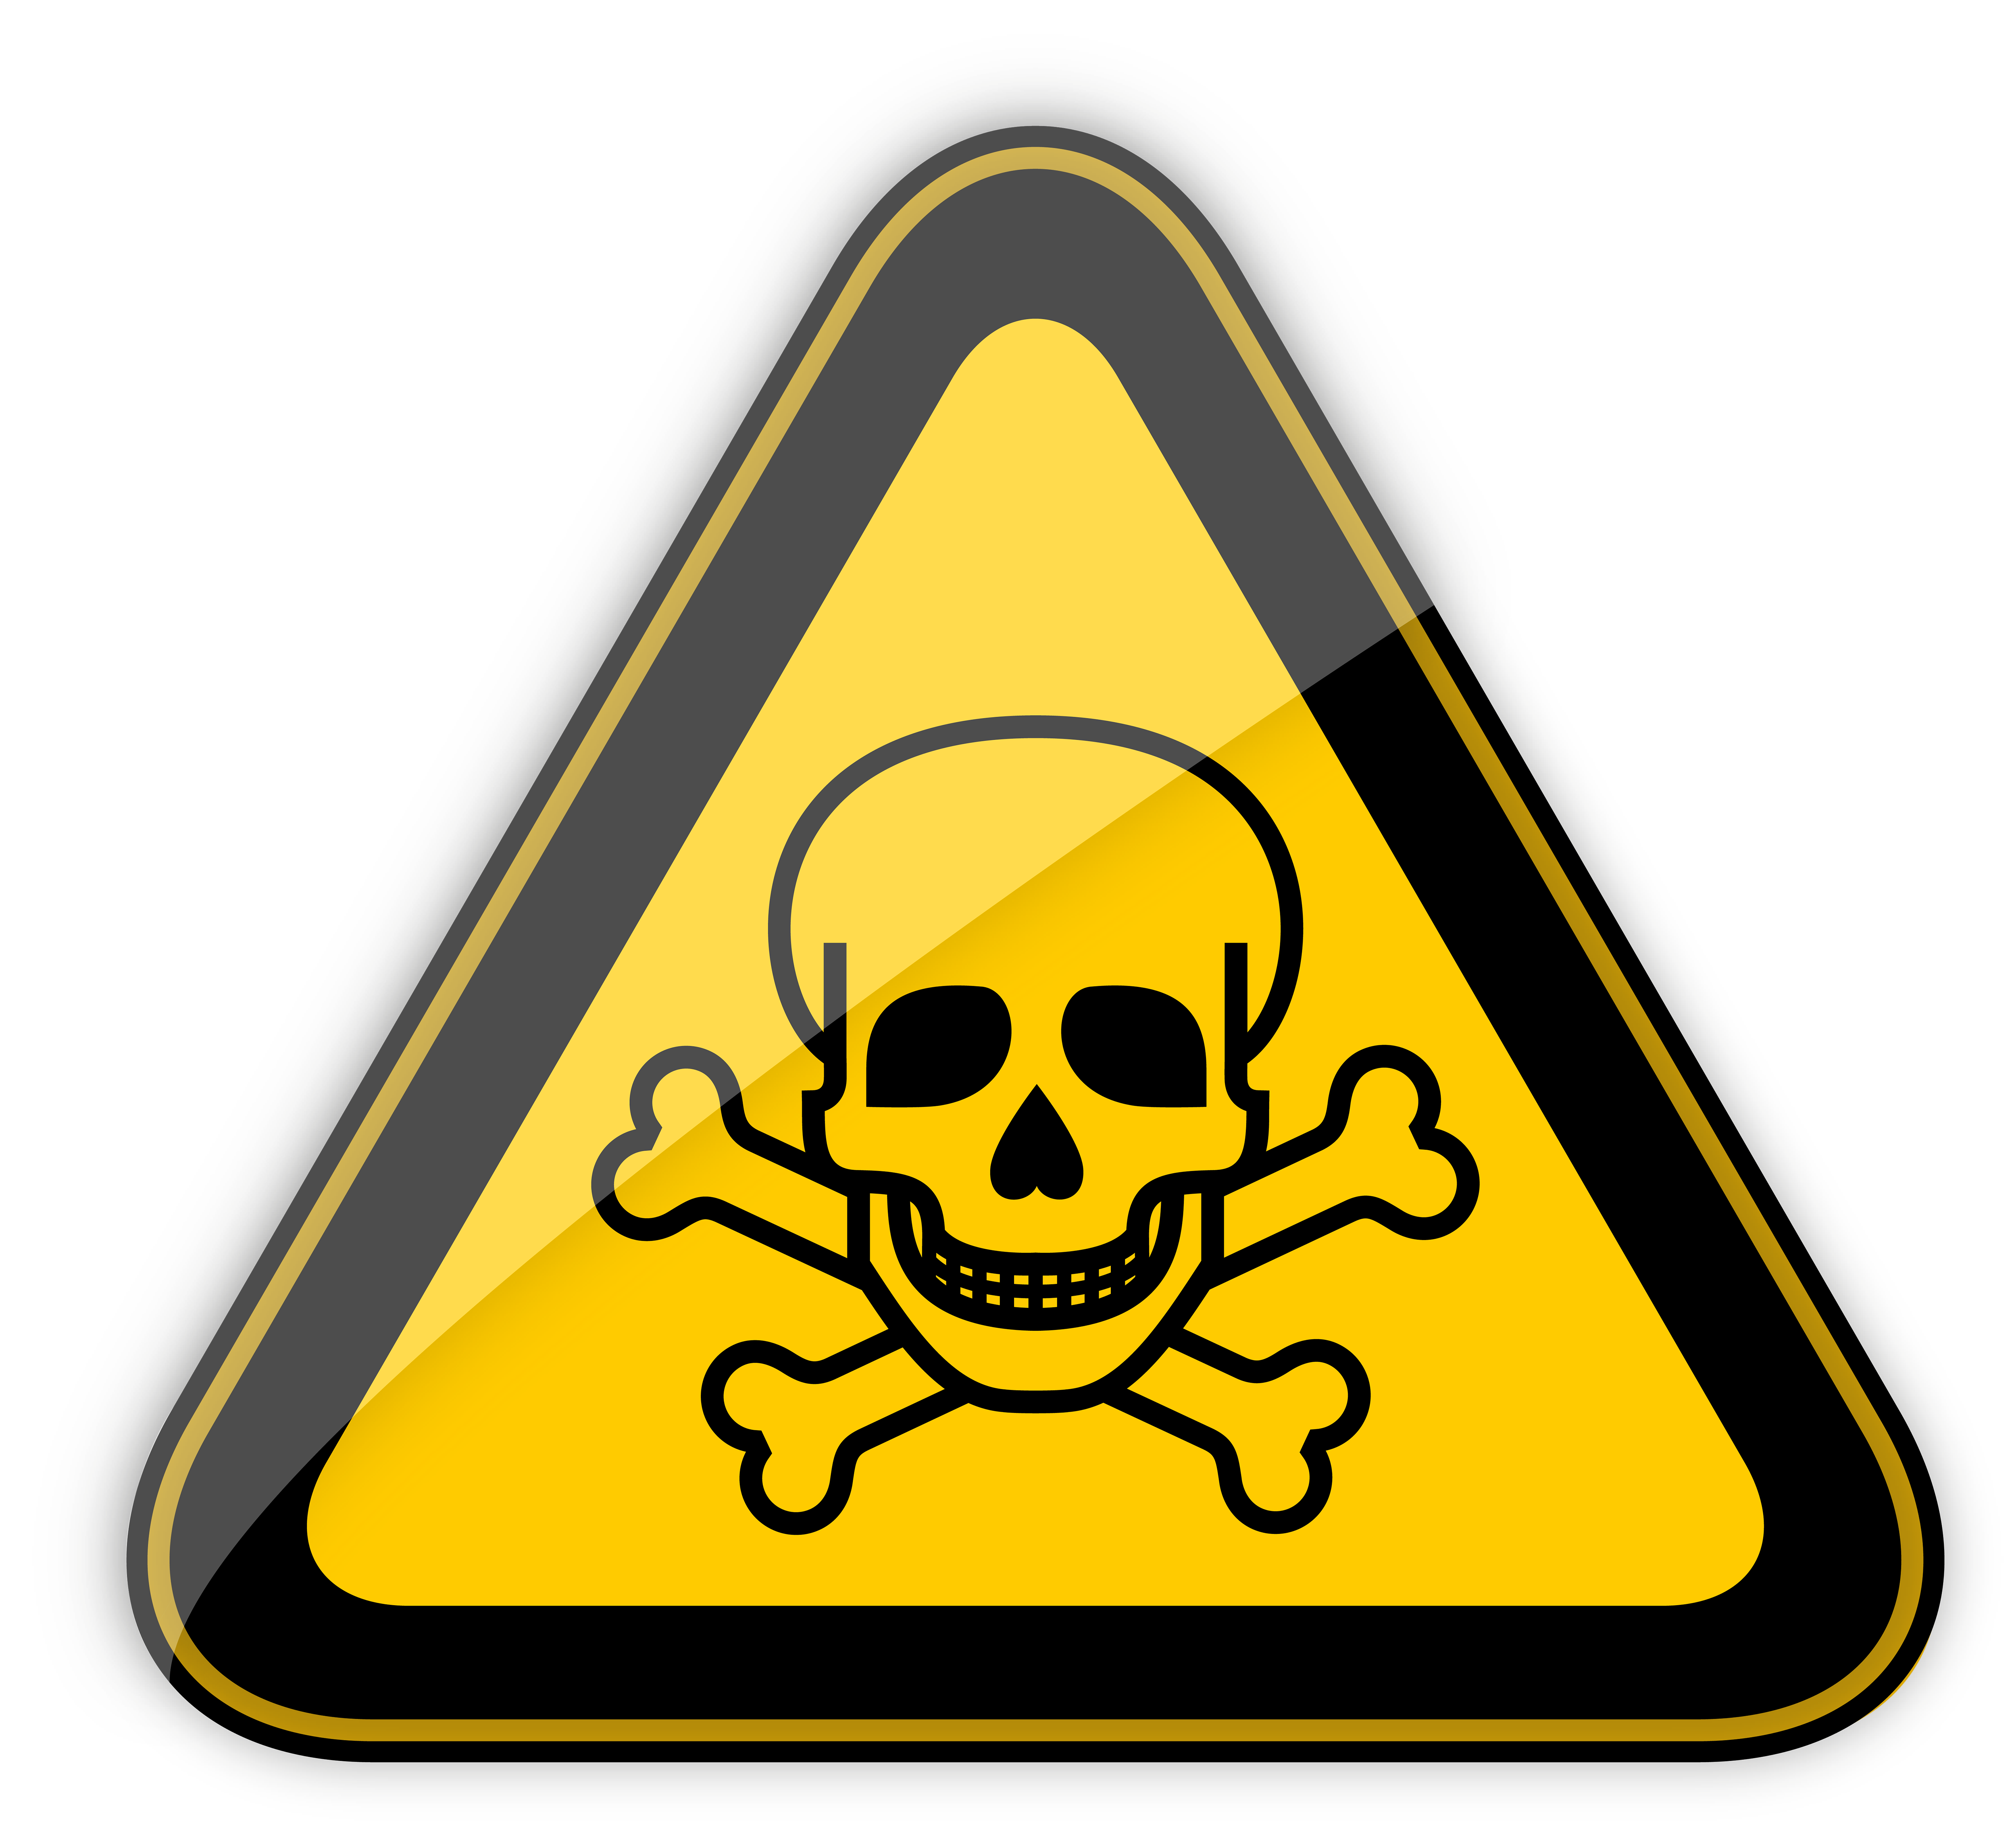 Toxic transparent. Warning sign png clipart